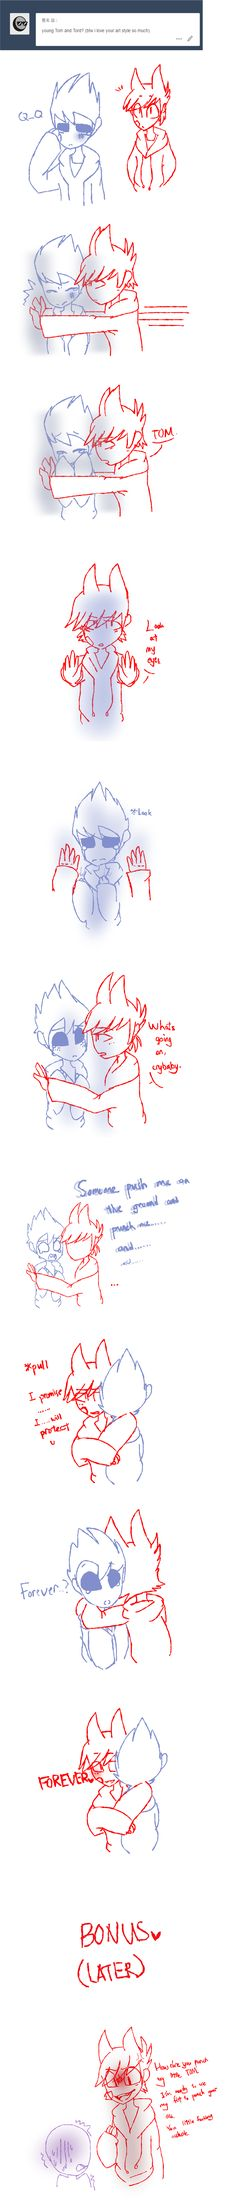 Man I love this I don't ship it but I love it ...sometimes I want some one to be like Tord i don't get bullied but still ...